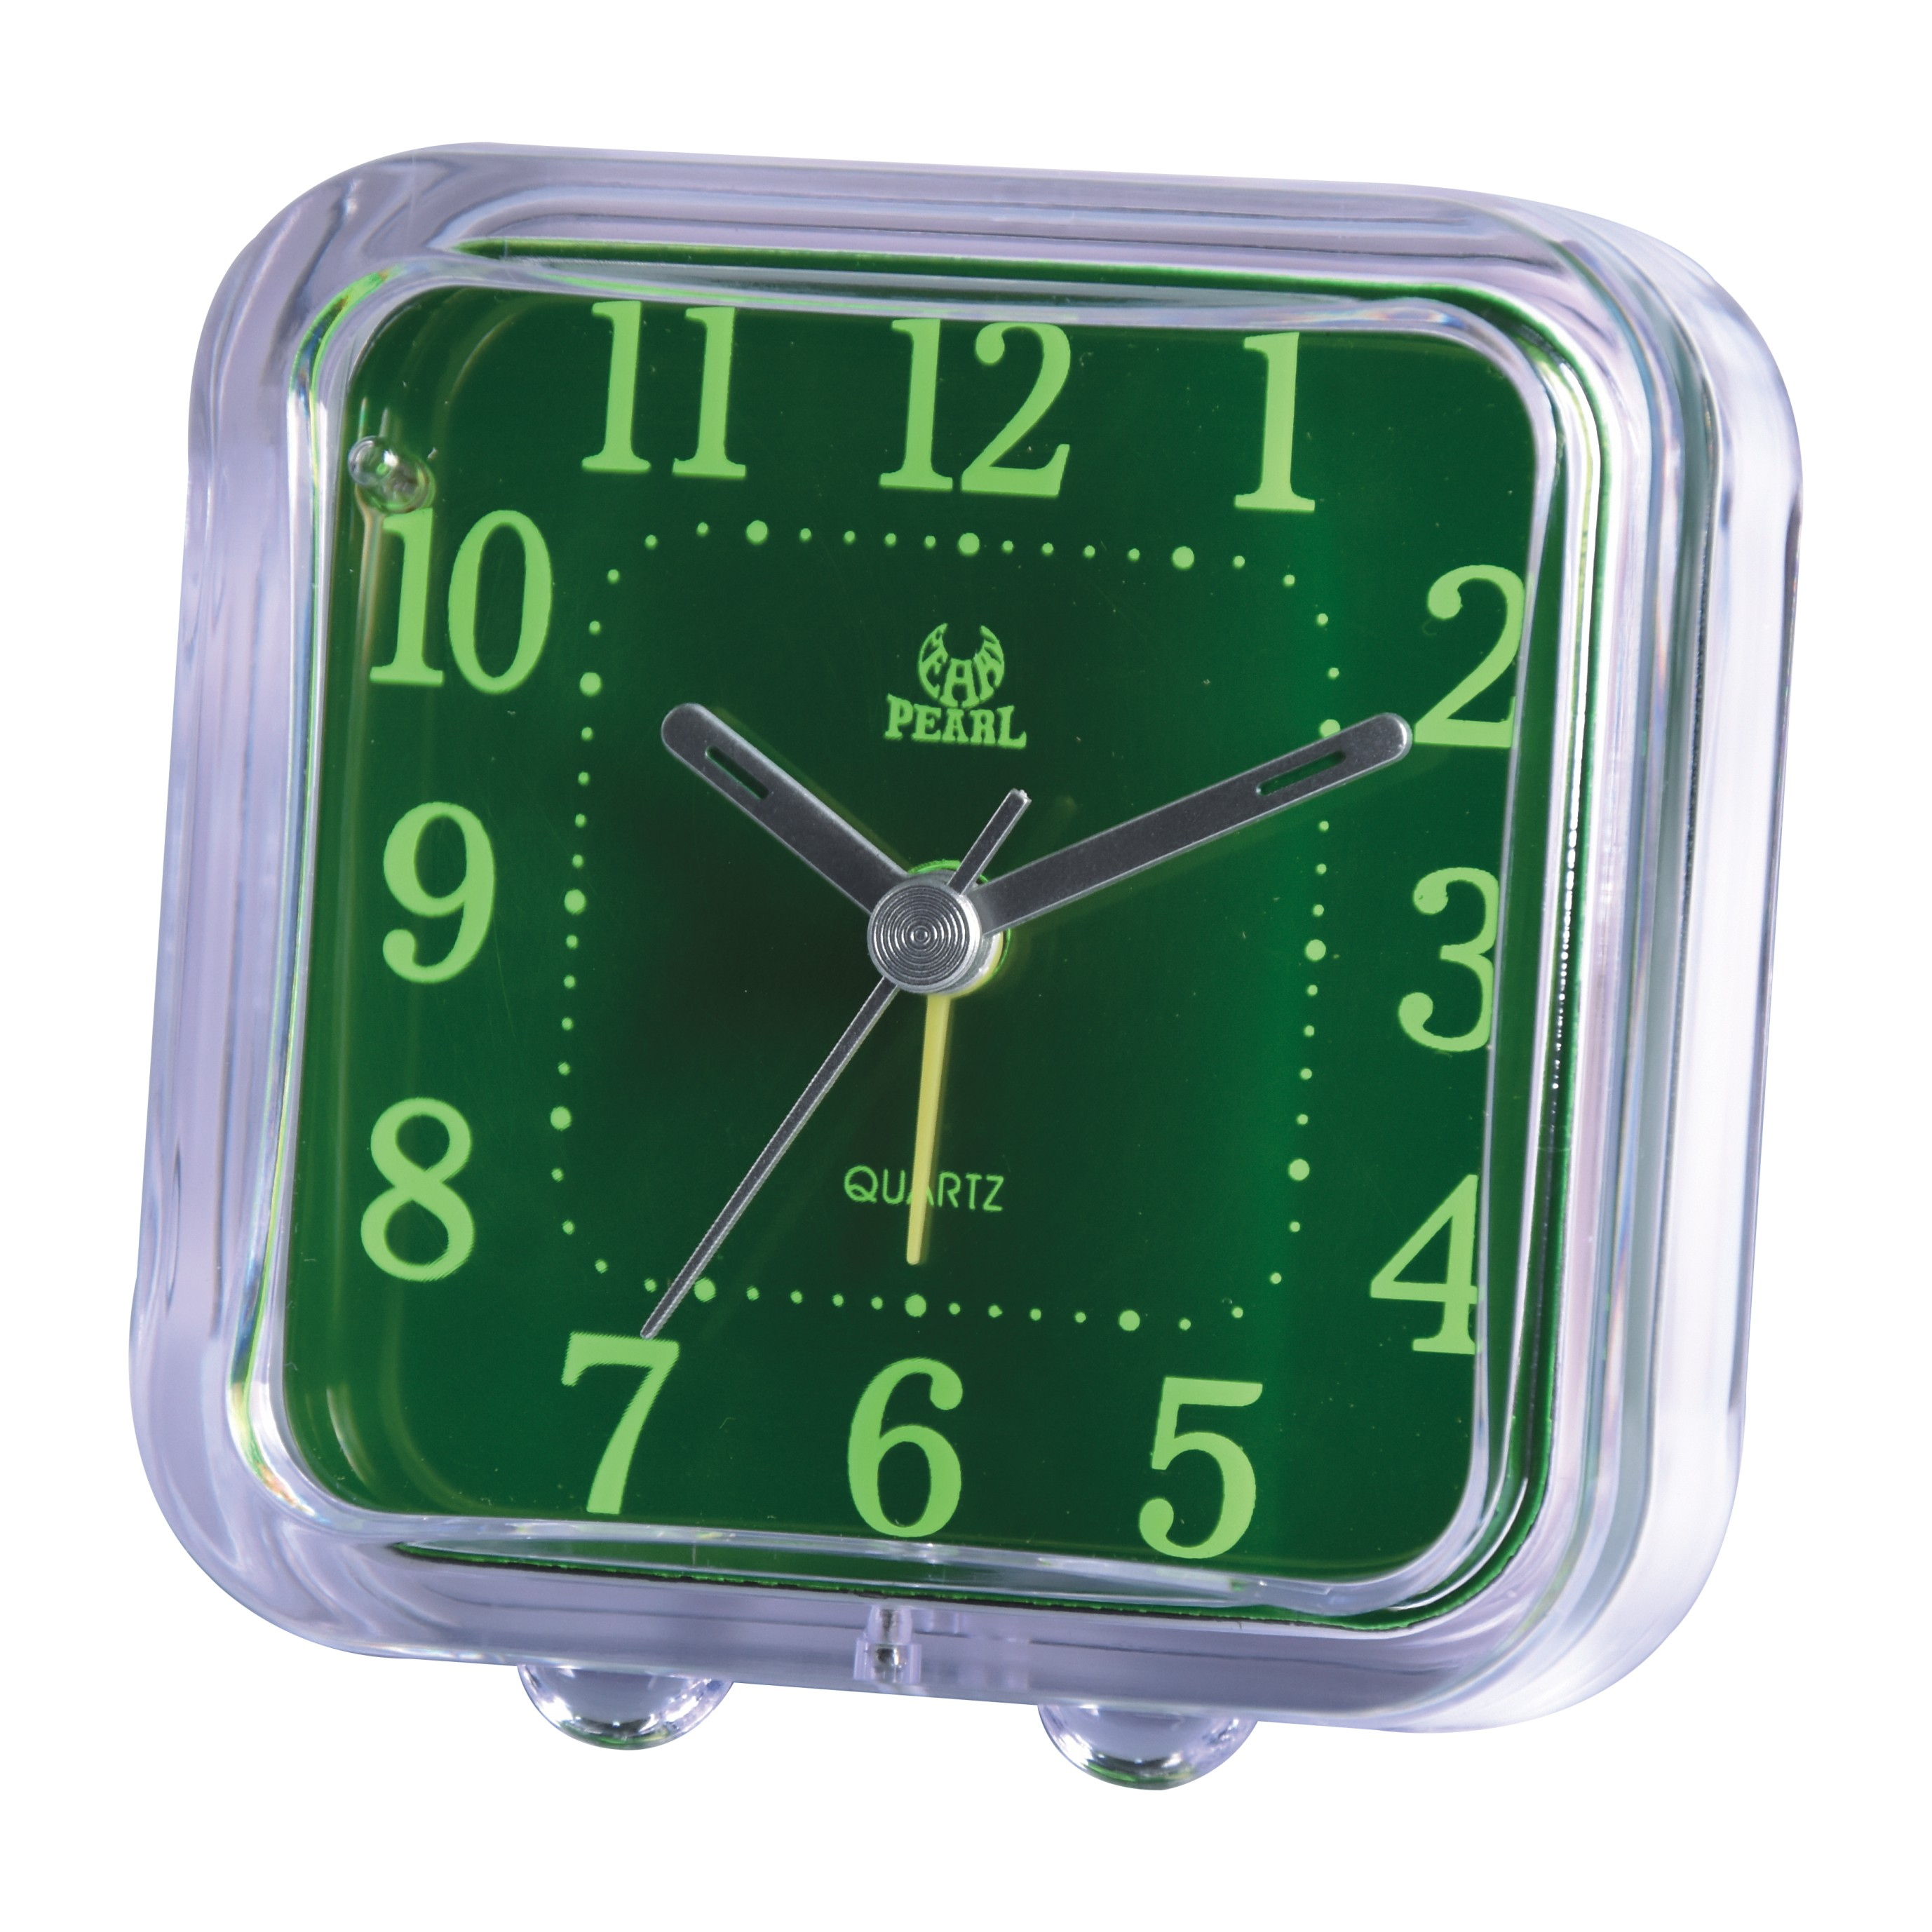 factory sheaper mini table clock with green clock face for promotion gift